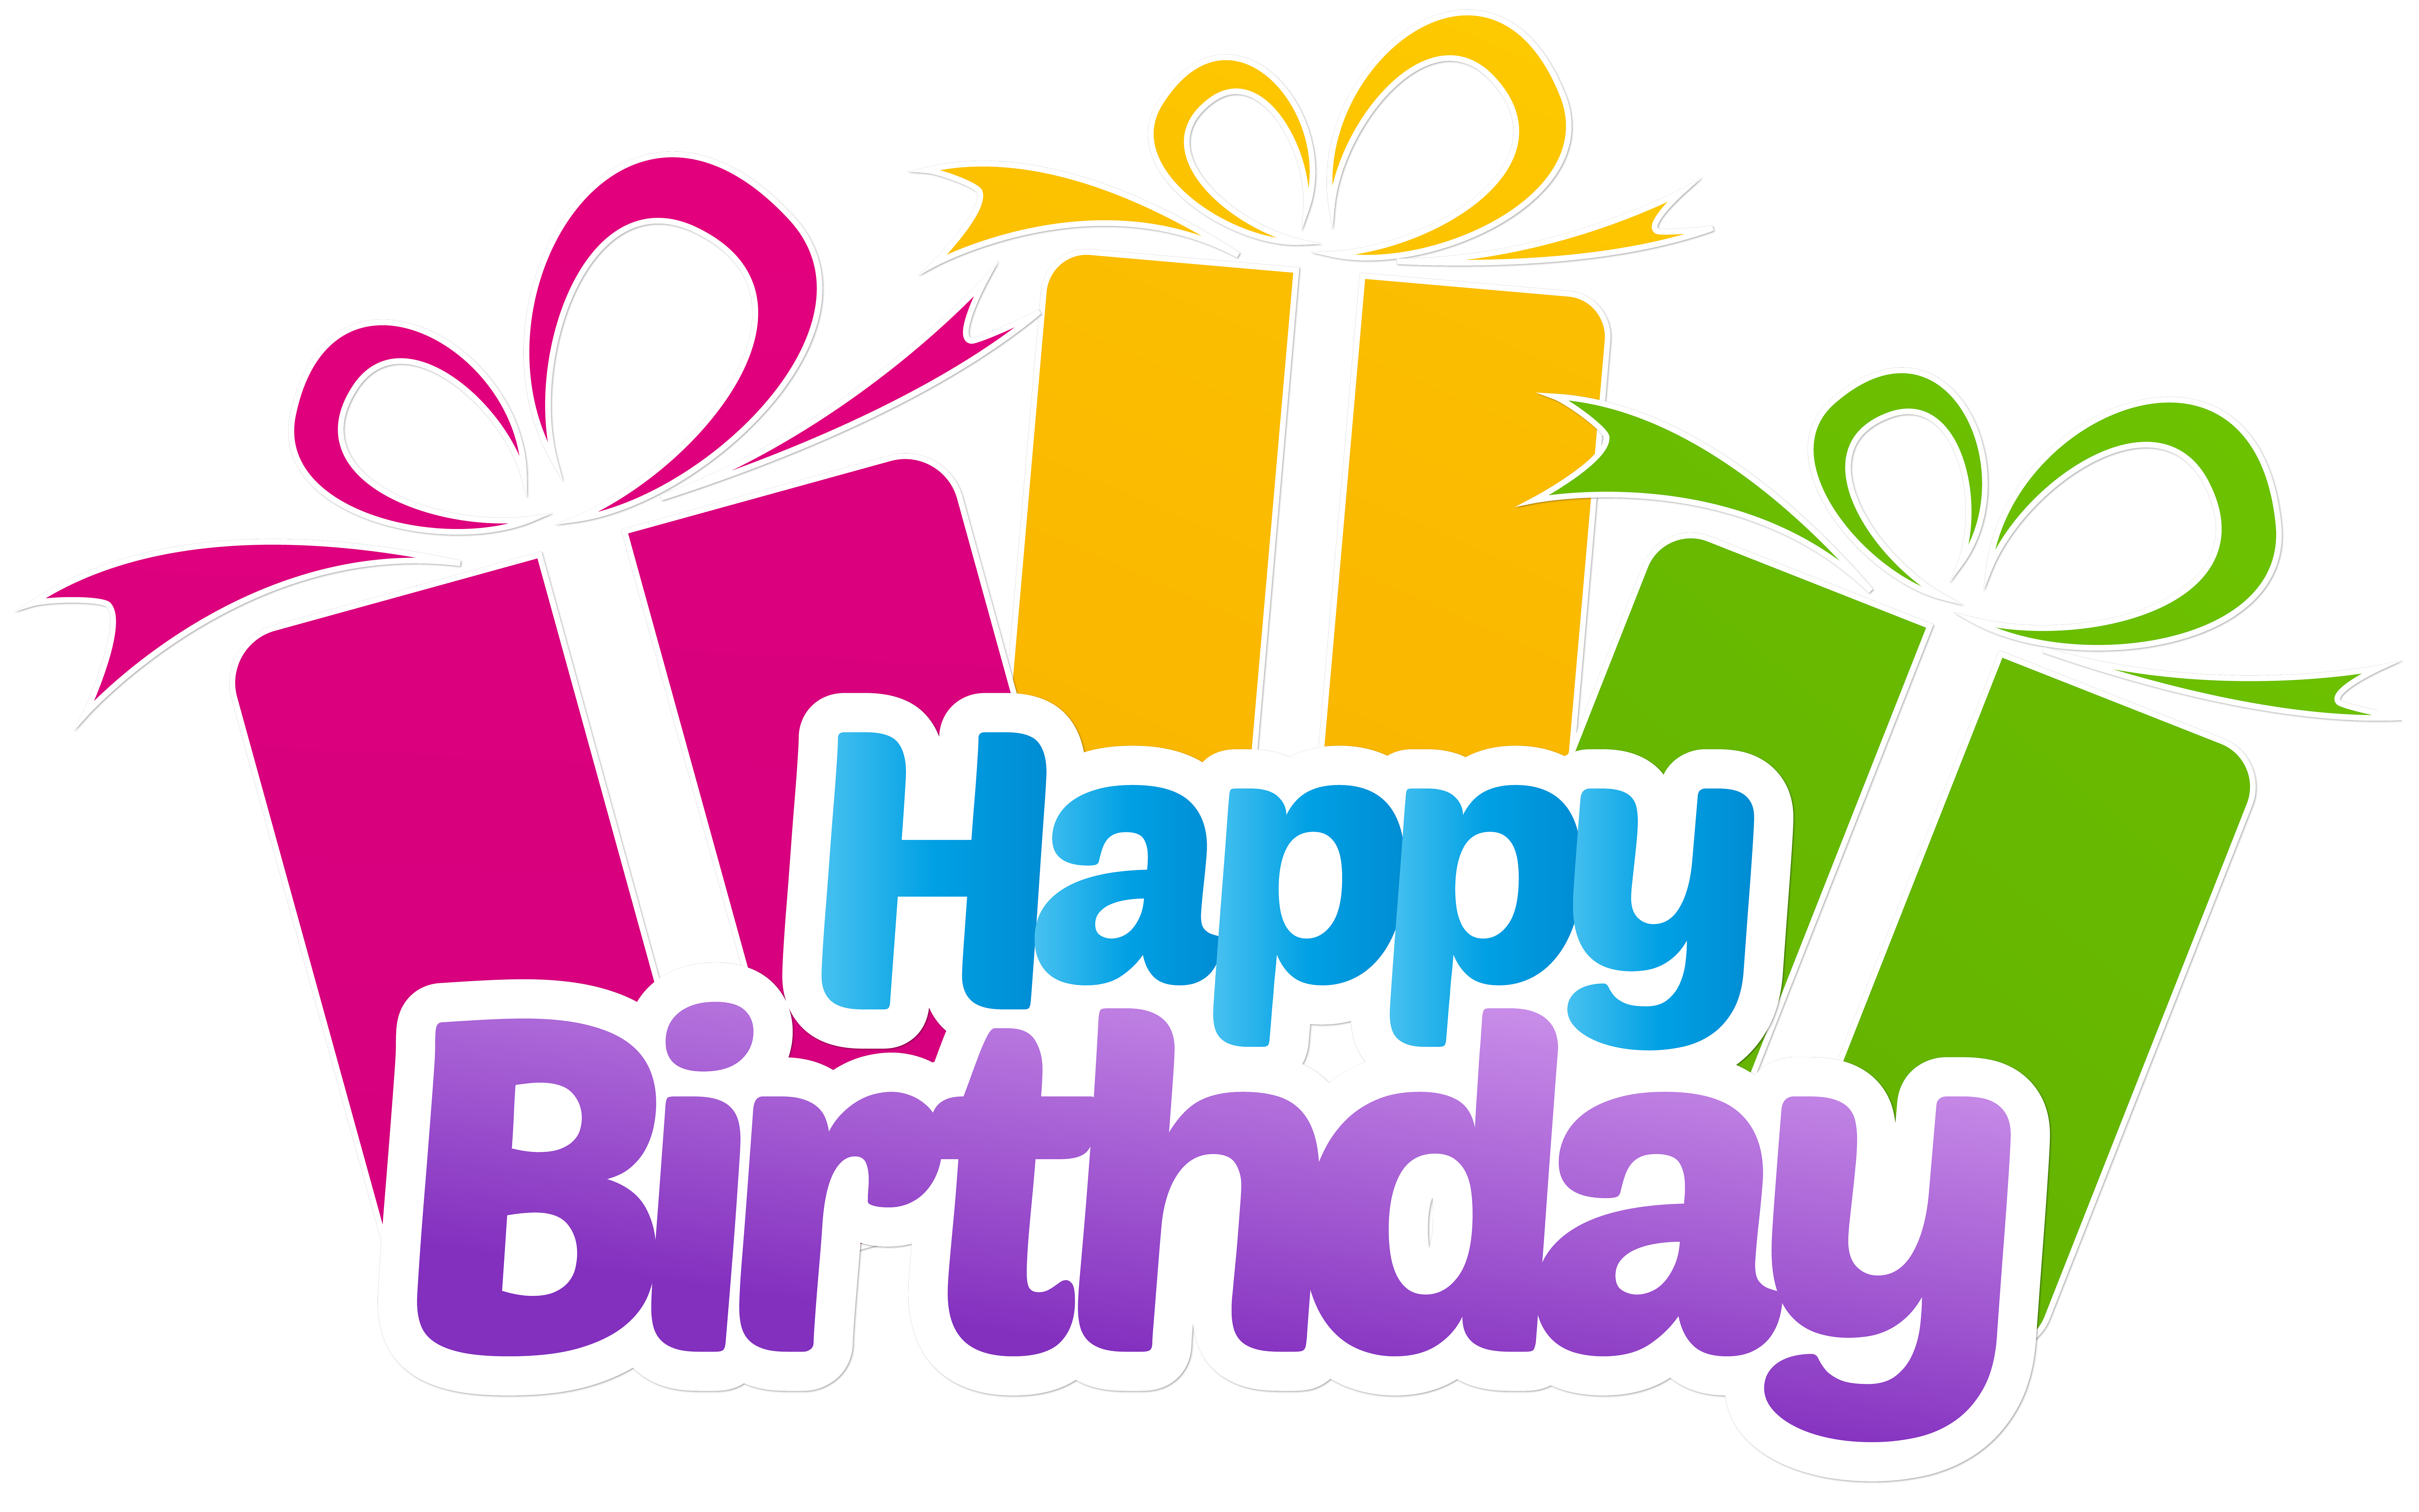 With gifts png clip. Gift clipart happy birthday